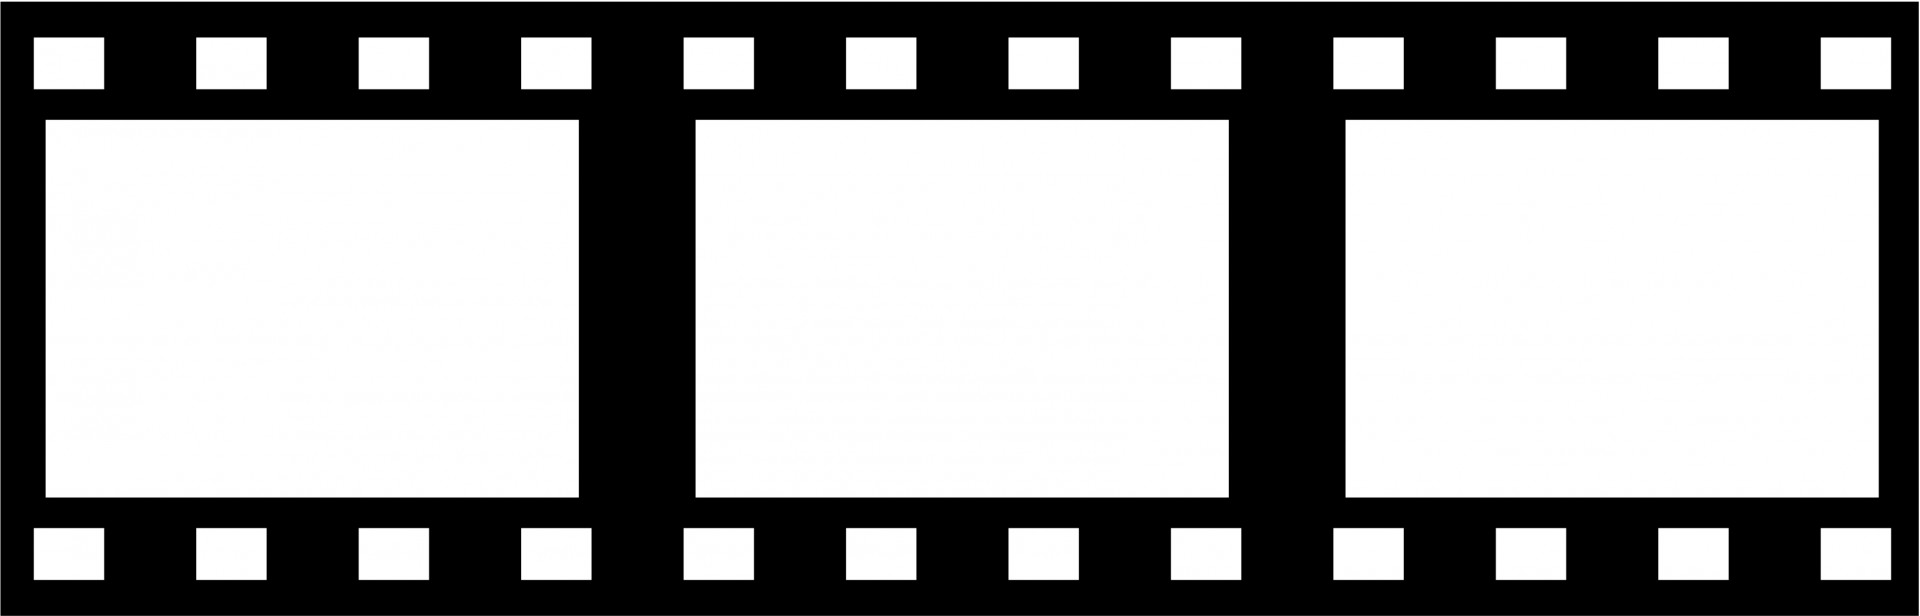 Photography clipart film reel Strip Film film Clipart image